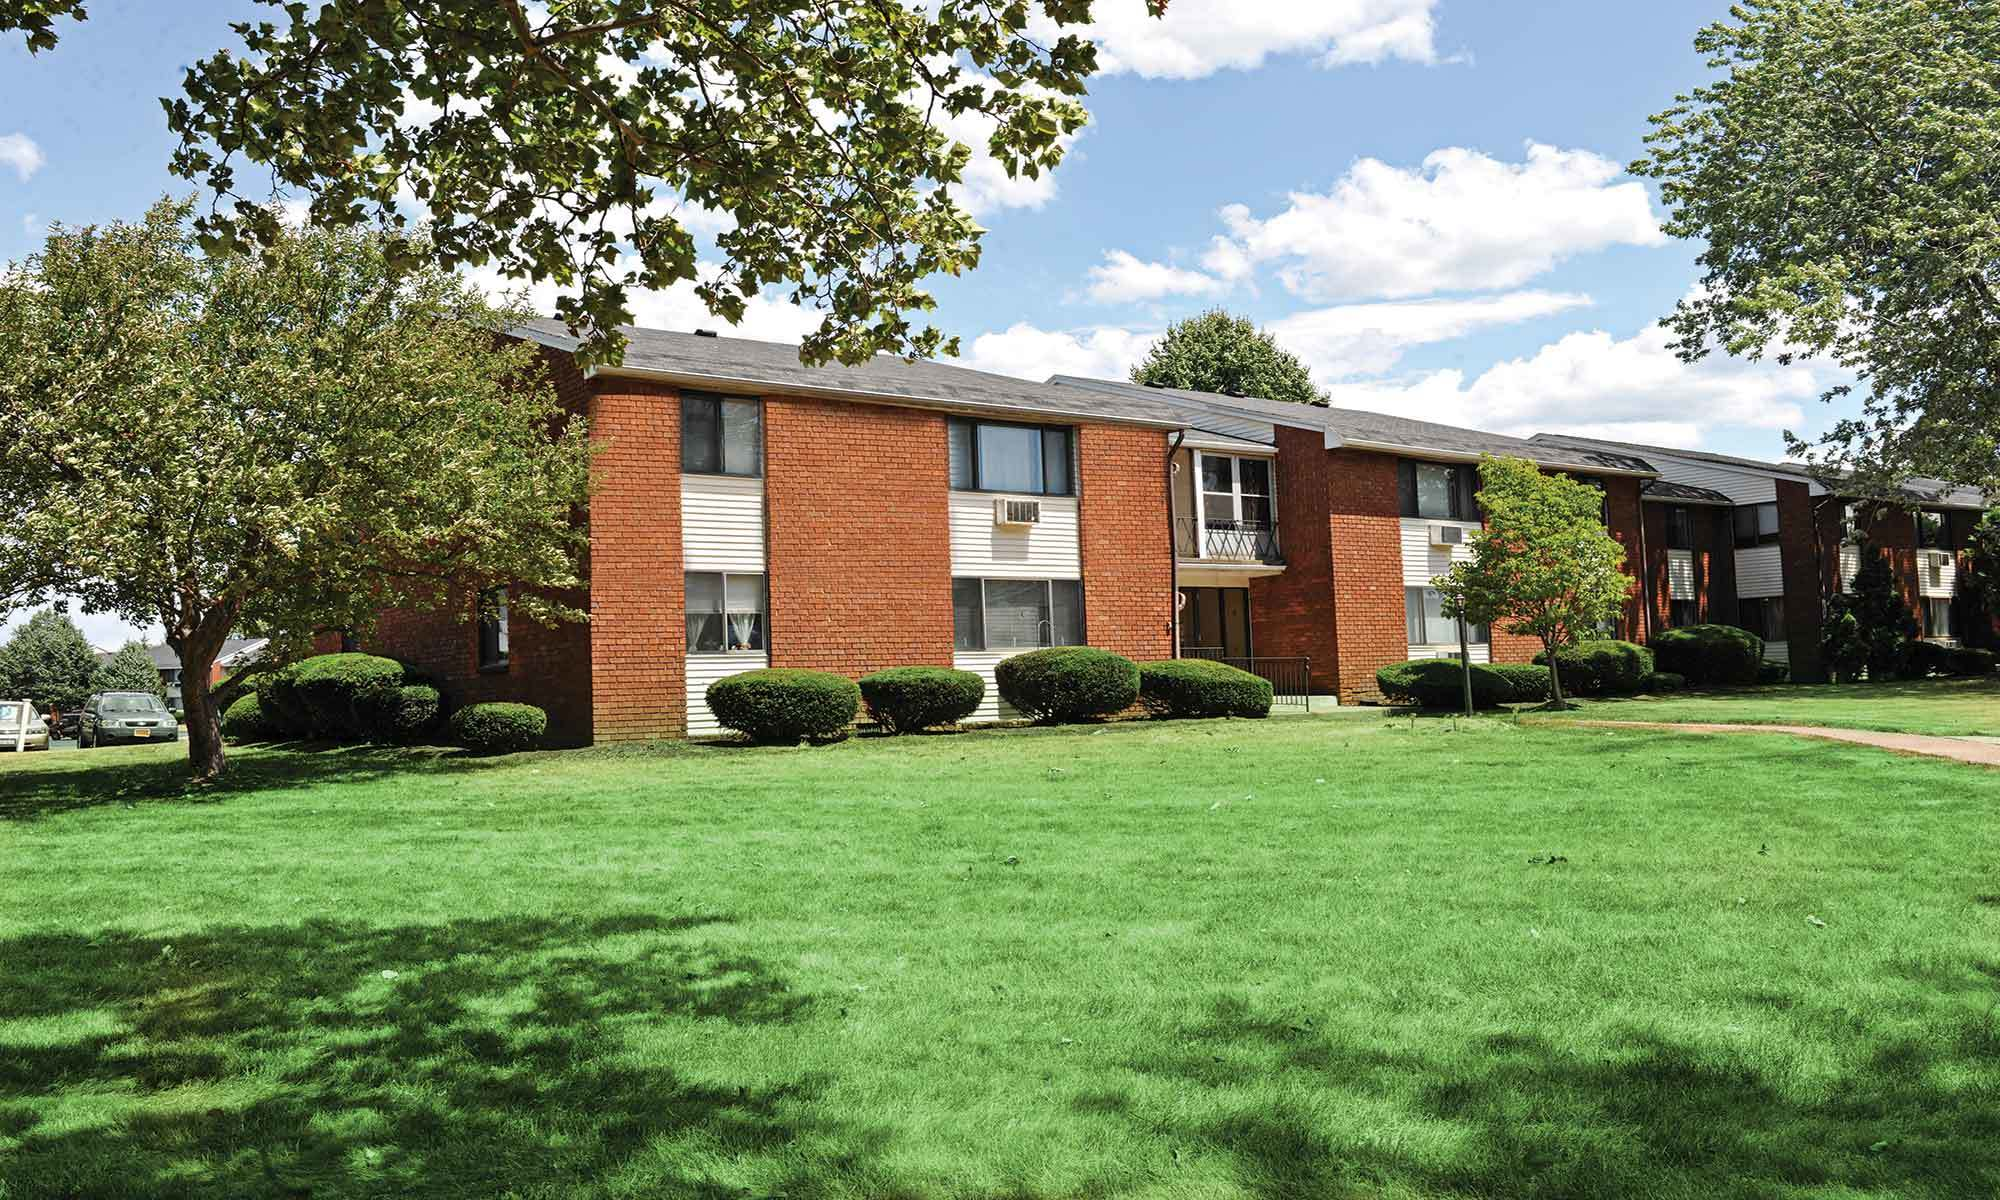 Welcome to King's Court Manor Apartments in Rochester, NY